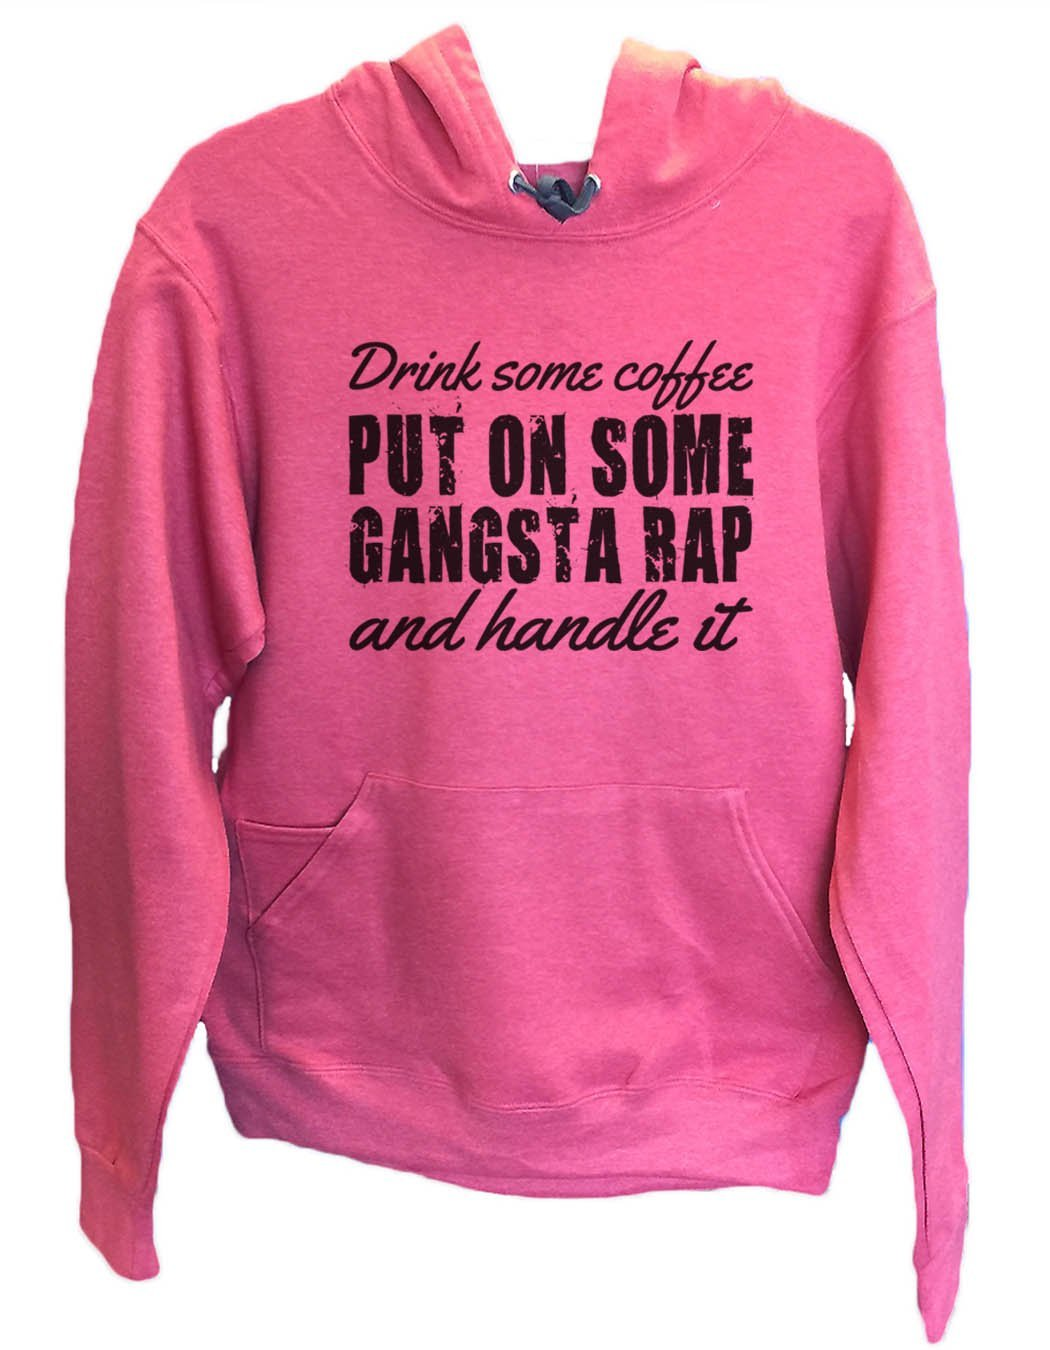 UNISEX HOODIE - Drink some coffee put on some gangsta rap and handle it - FUNNY MENS AND WOMENS HOODED SWEATSHIRTS - 956 Funny Shirt Small / Cranberry Red